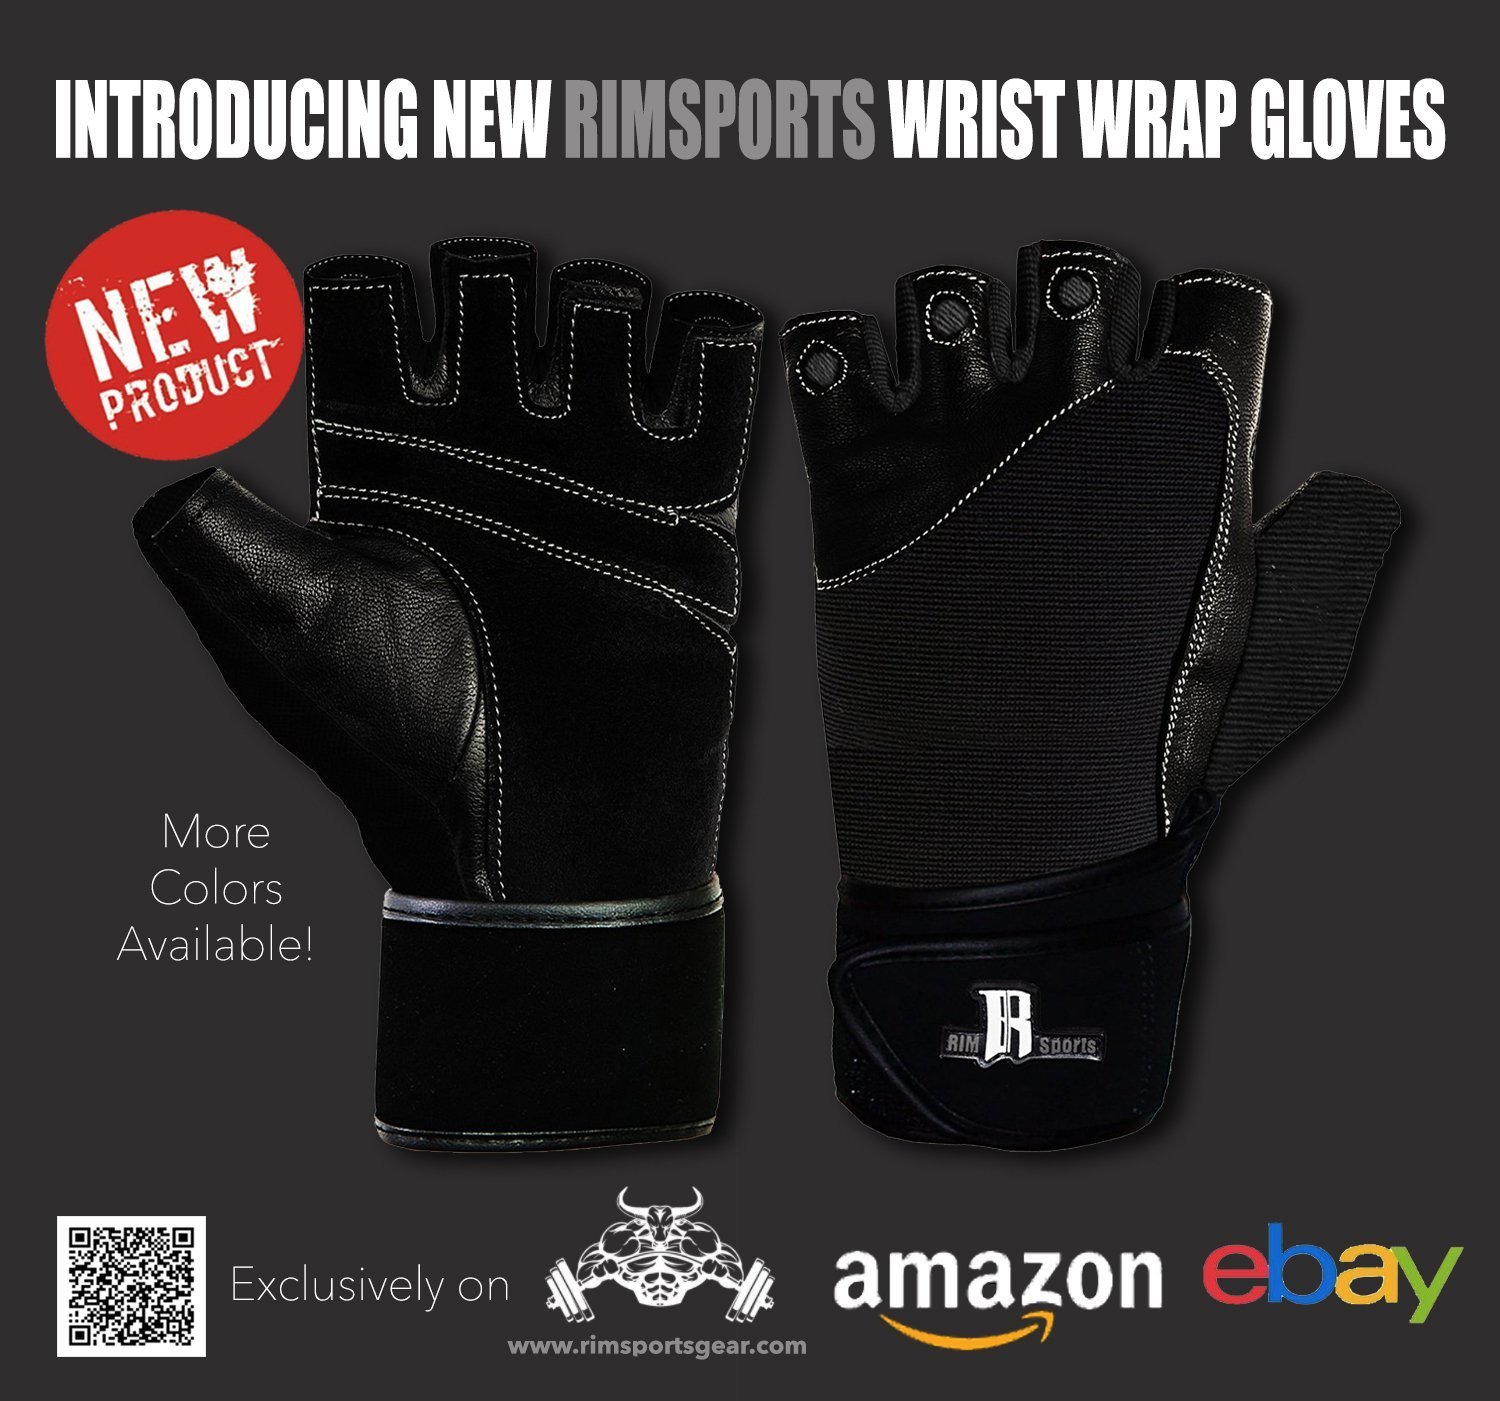 Amazon.com : RIMSports Gym Gloves for Powerlifting, Weight Training,  Biking, Cycling - Premium Quality Weights Lifting Gloves Workout Gloves  w/Washable for ...